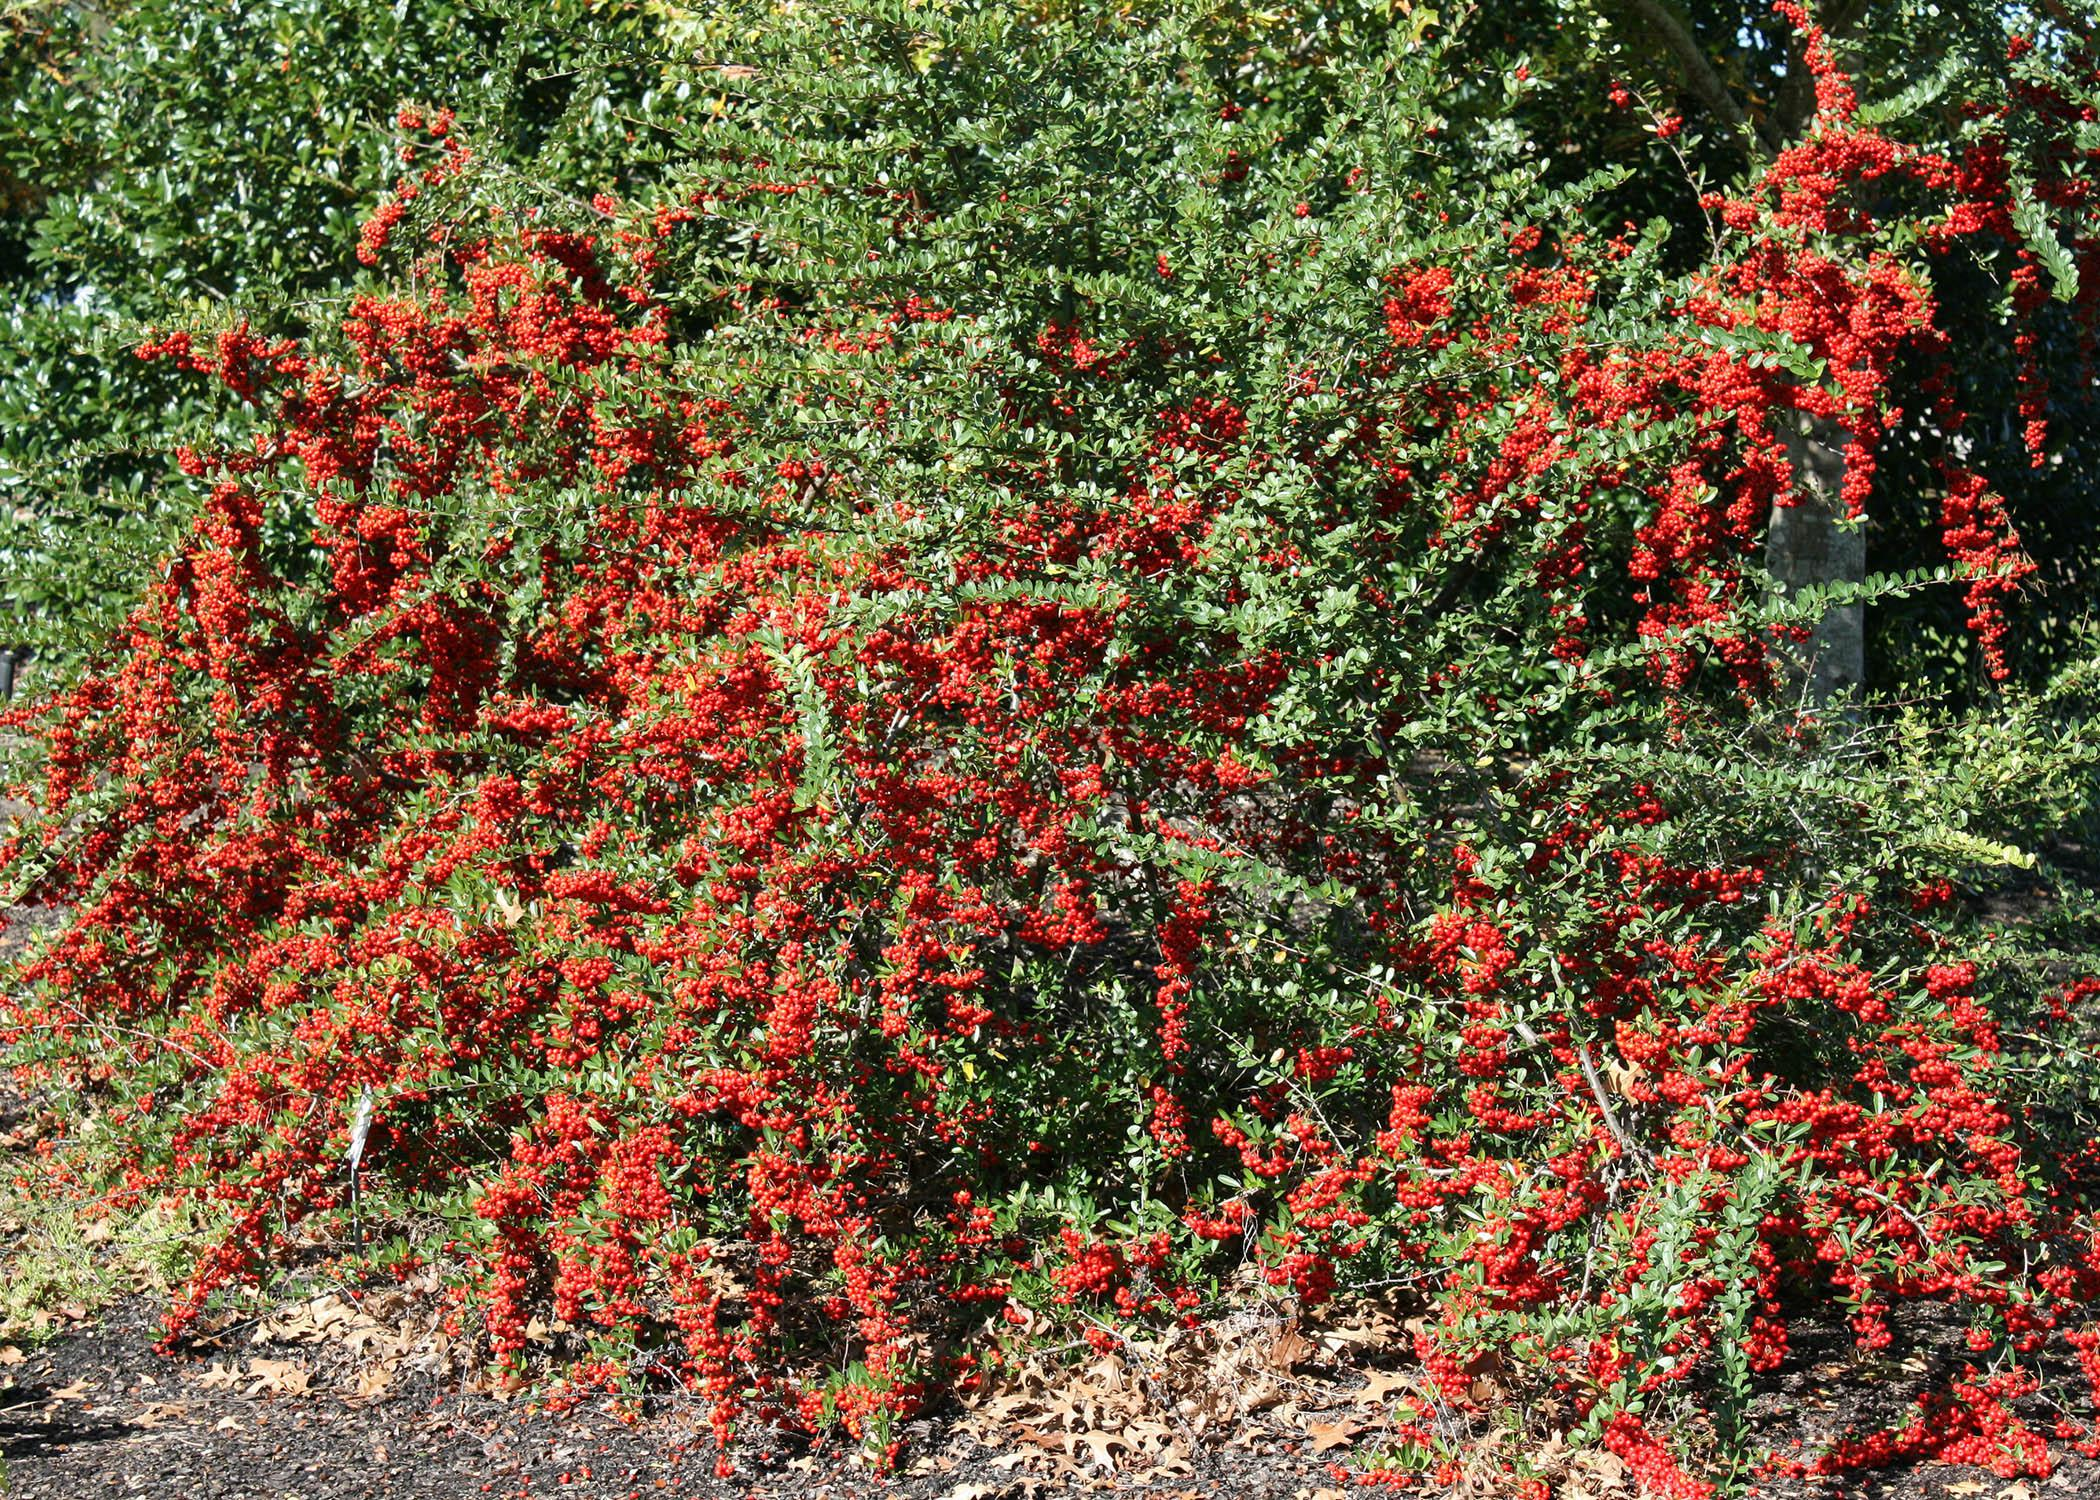 Bushes with red berries offer winter garden color for Piracanta pianta